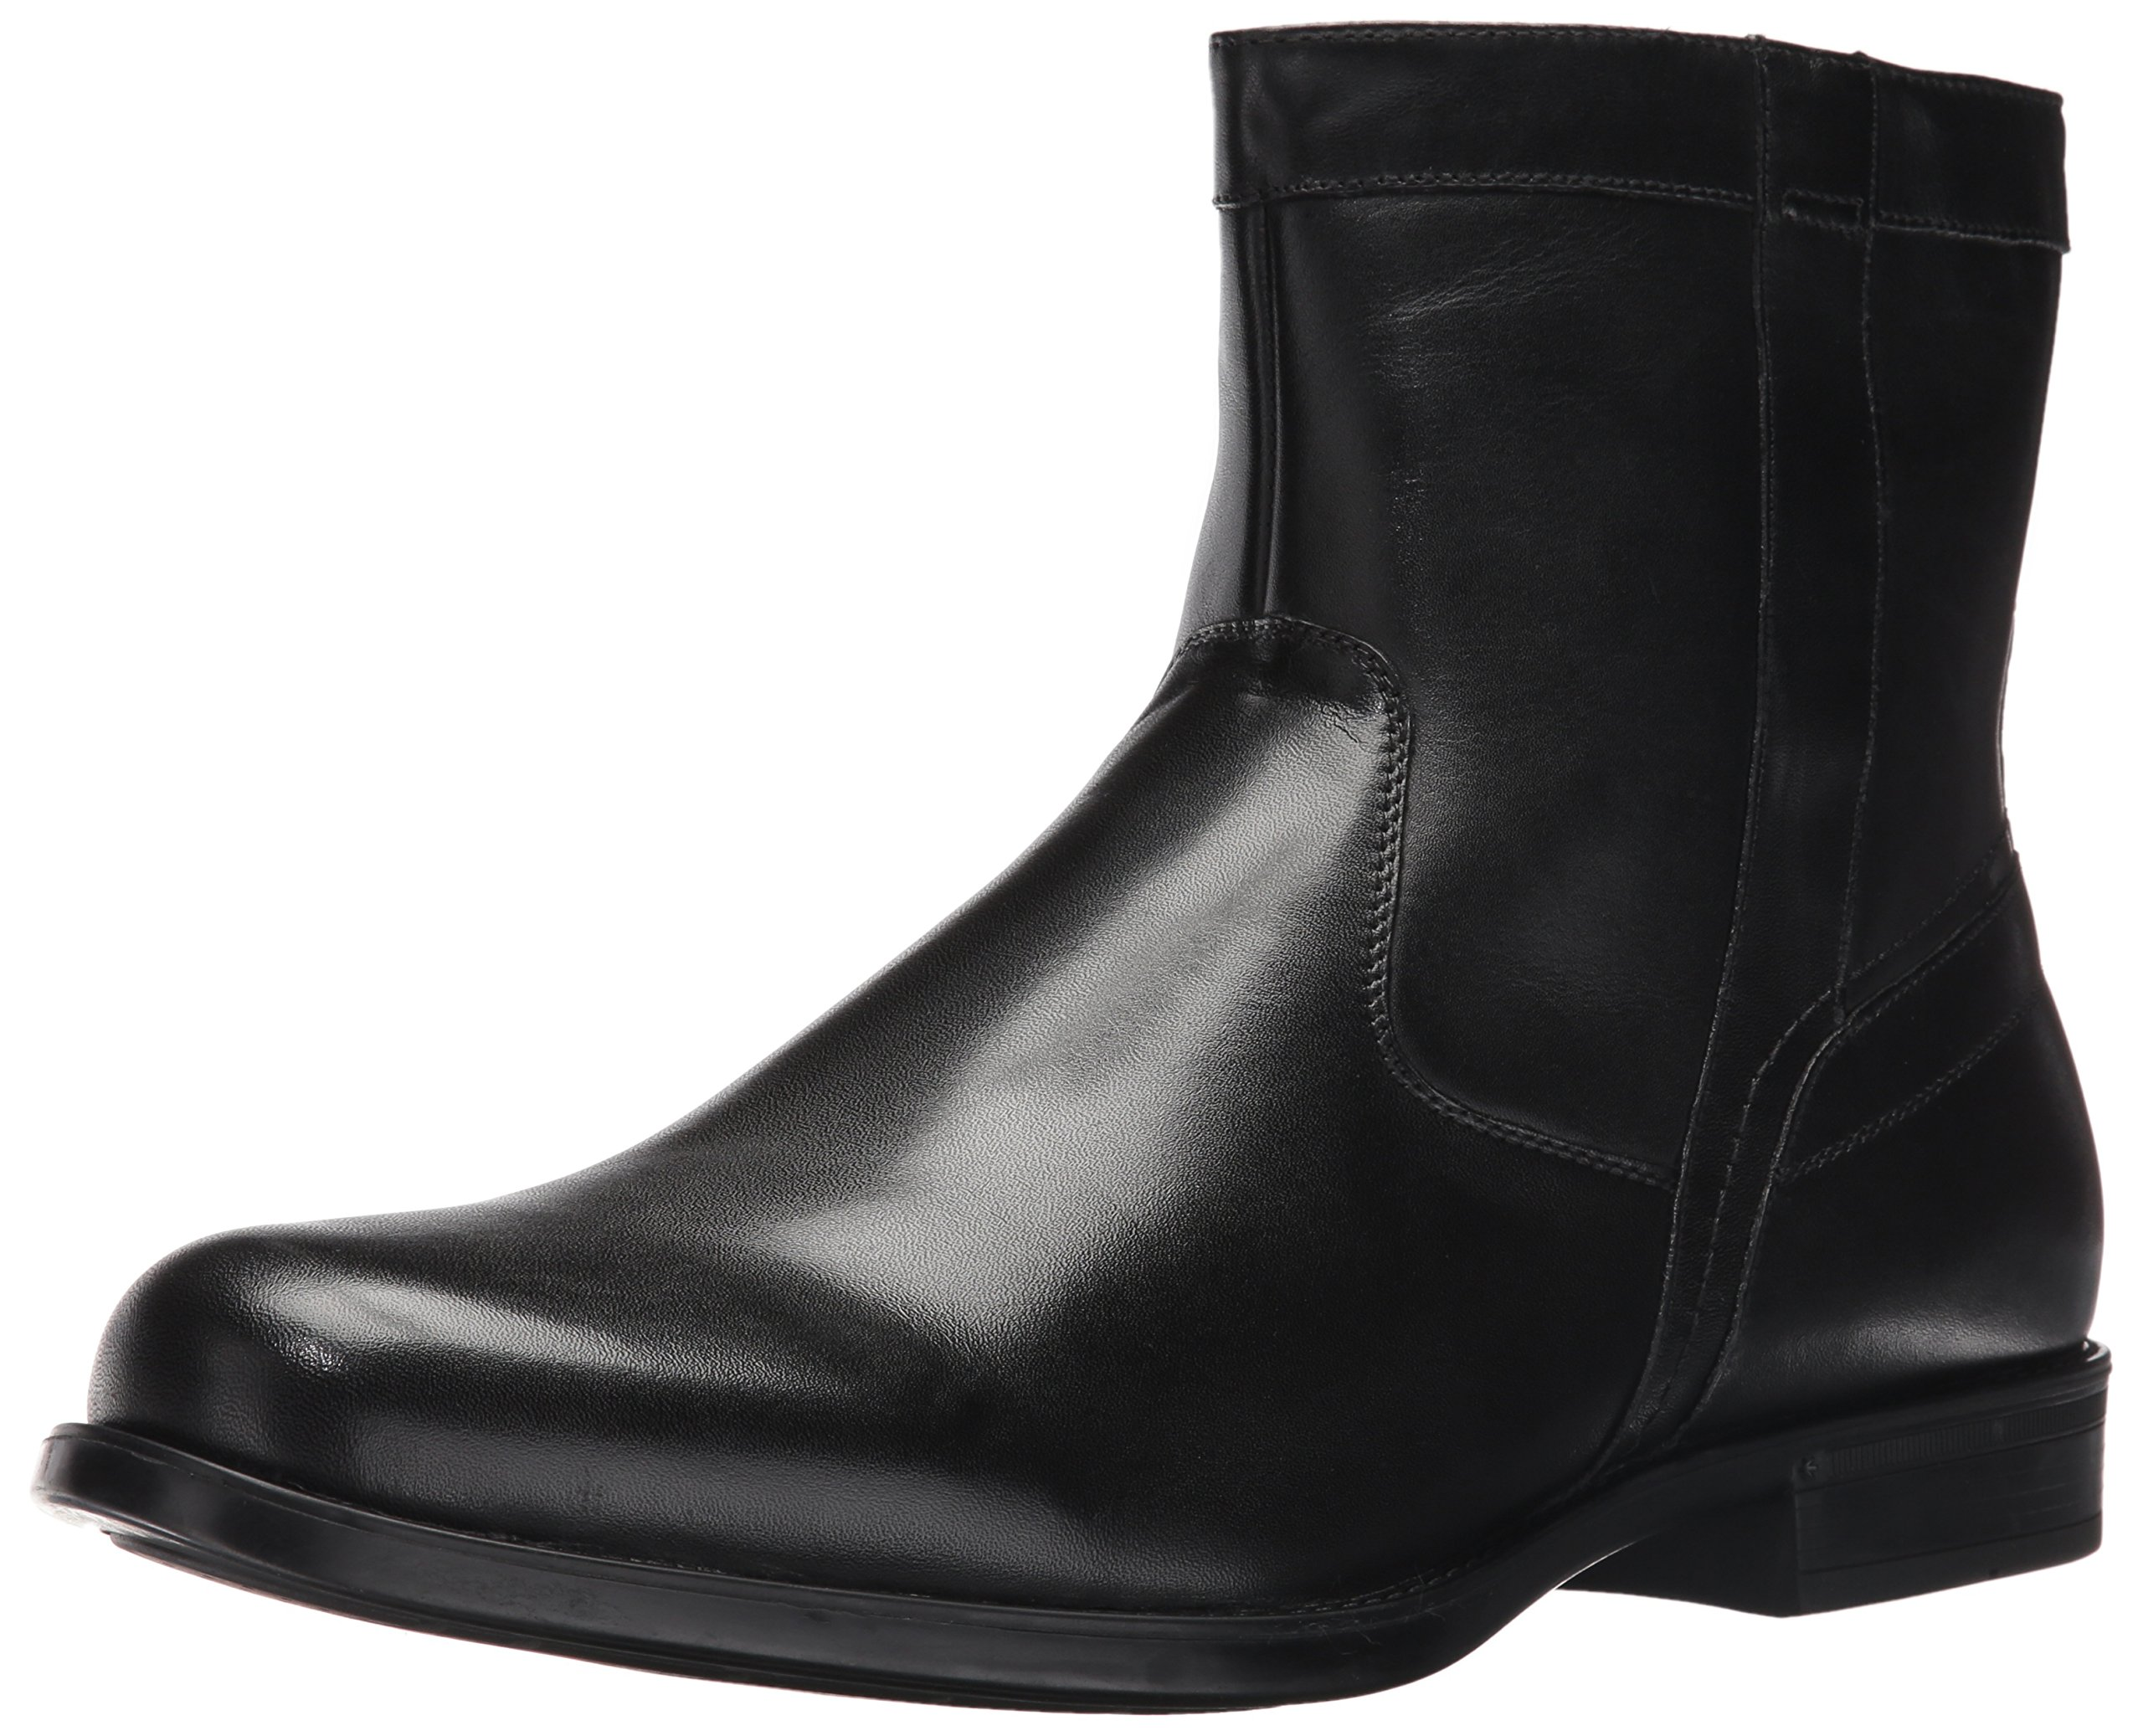 Florsheim Men's Medfield Plain Toe Zip Chelsea Boot, Black, 10 D US by Florsheim